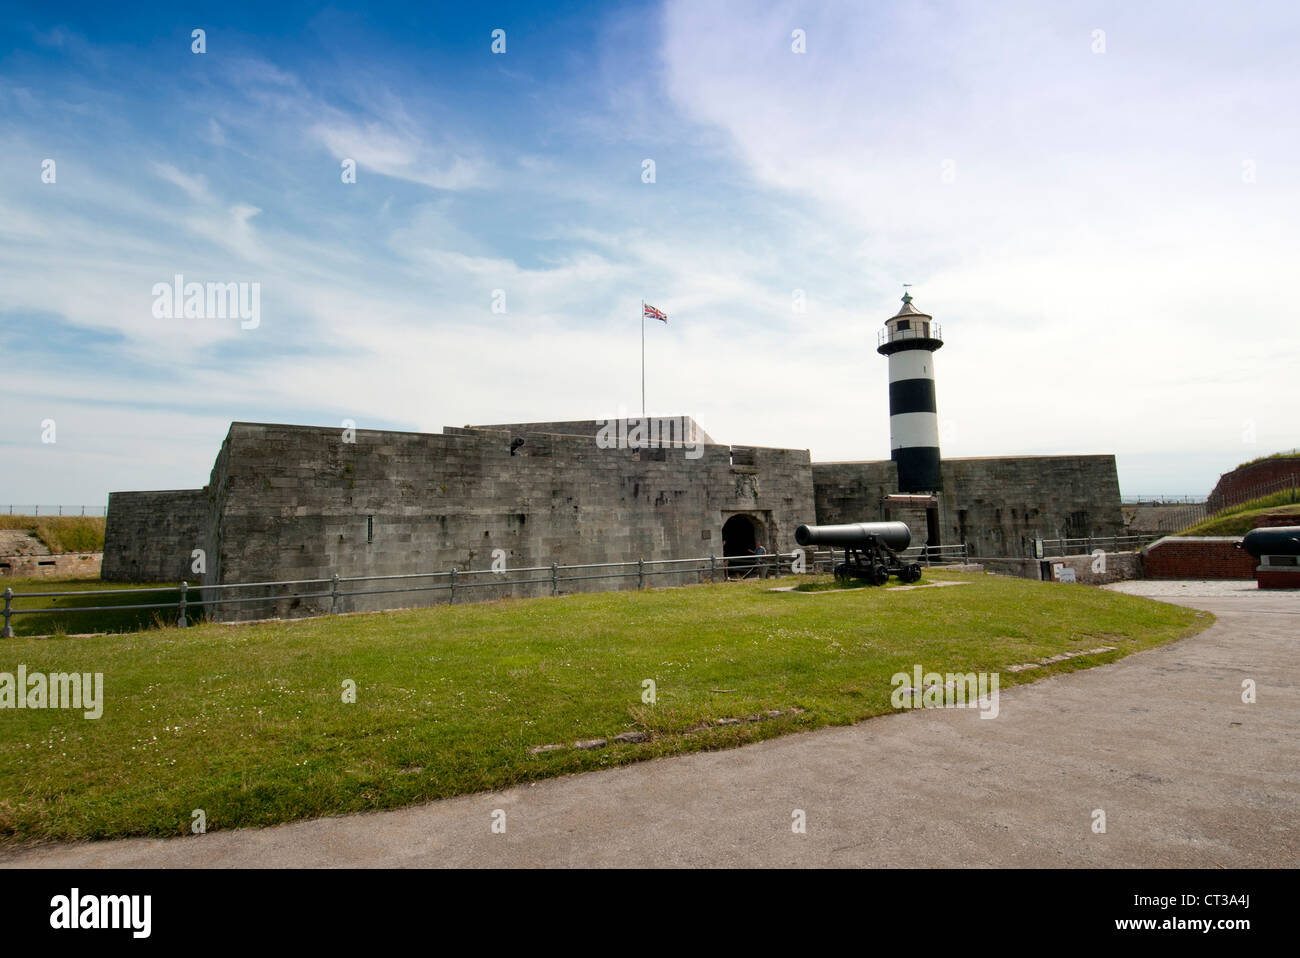 Southsea Castle and lighthouse - Stock Image